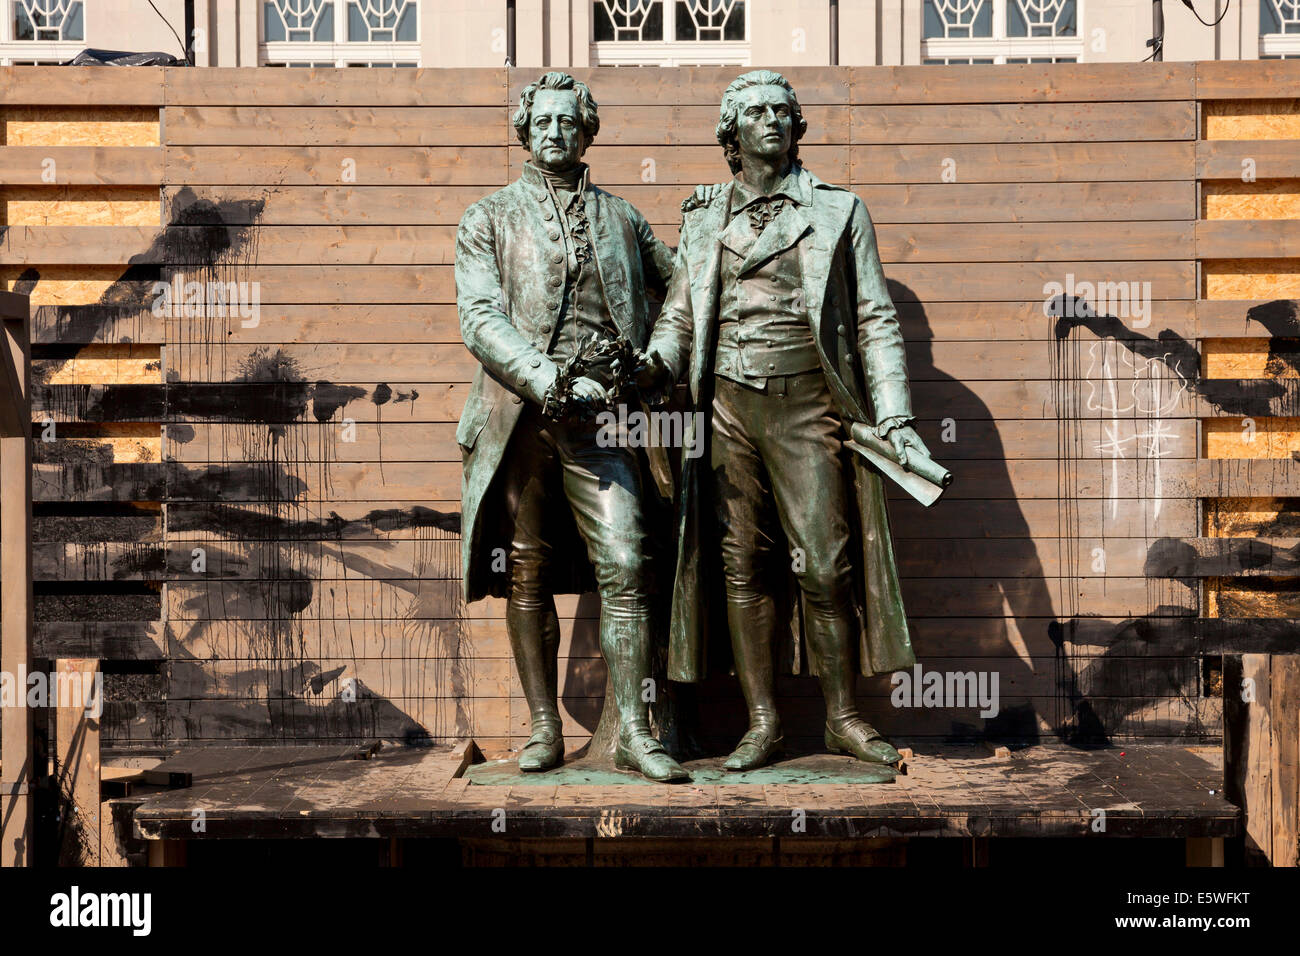 The Goethe-Schiller Monument as part of a theater Scenic design in   Weimar, Thuringia, Germany, Europe - Stock Image